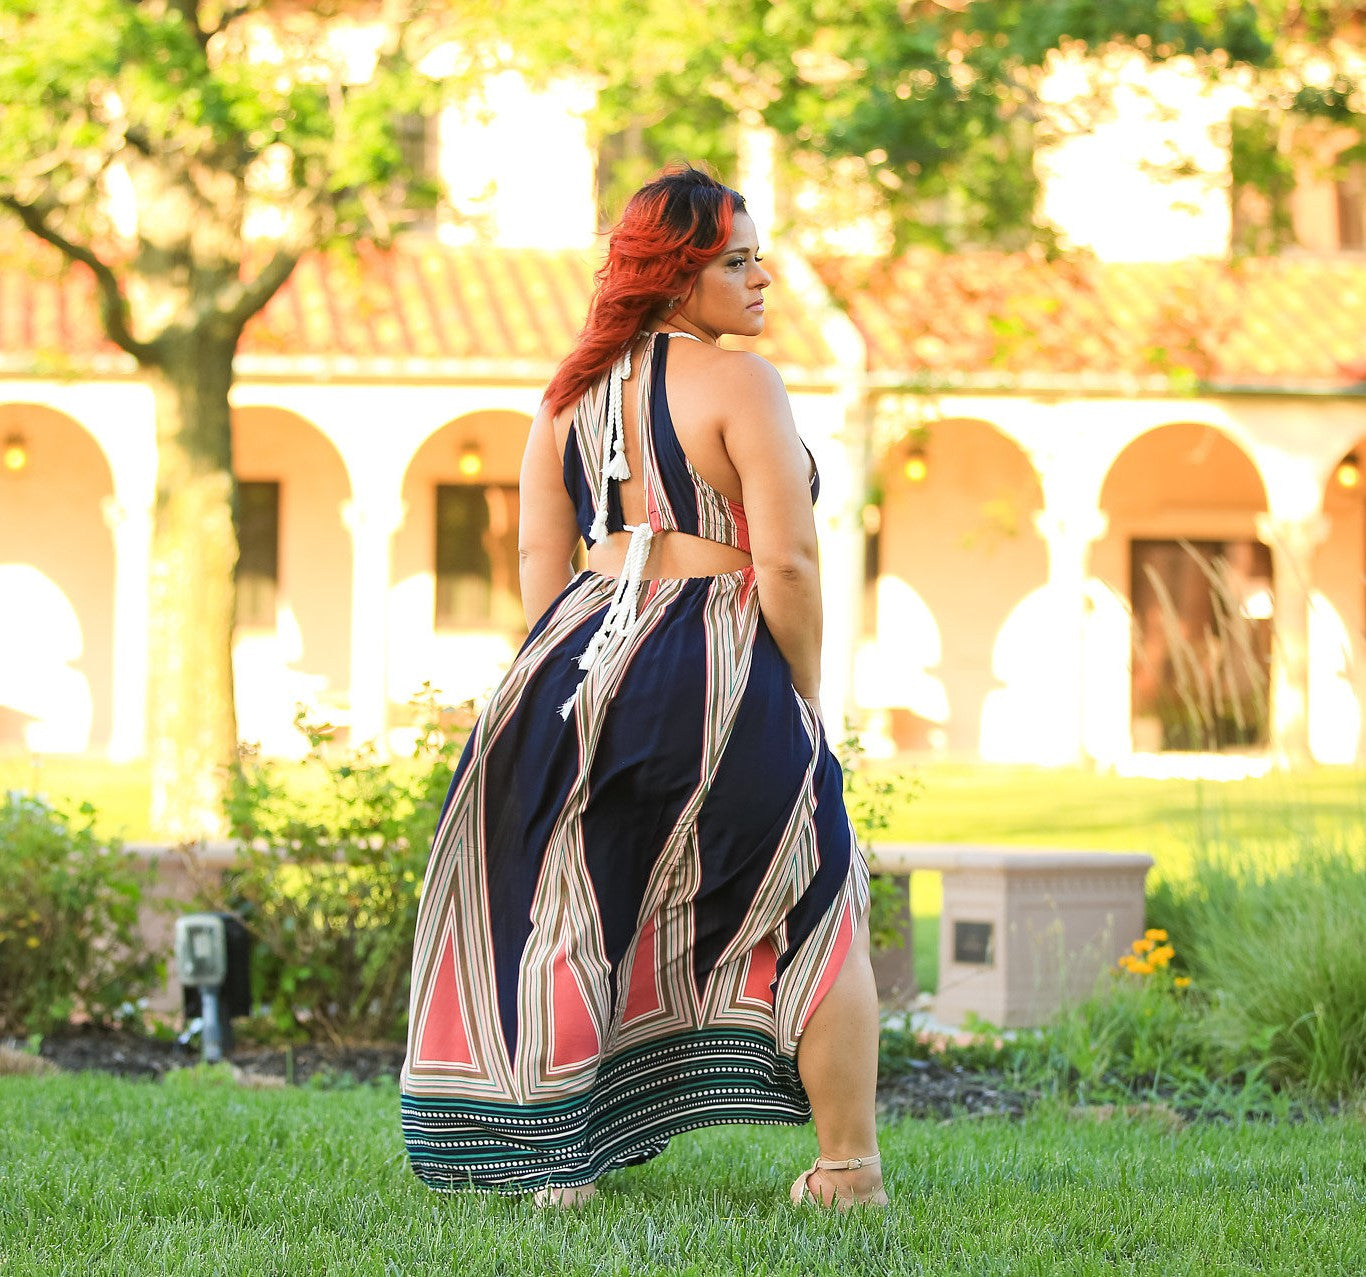 A Symmetrical Breeze Cut Out Maxi - Blacque Onyx Apparel